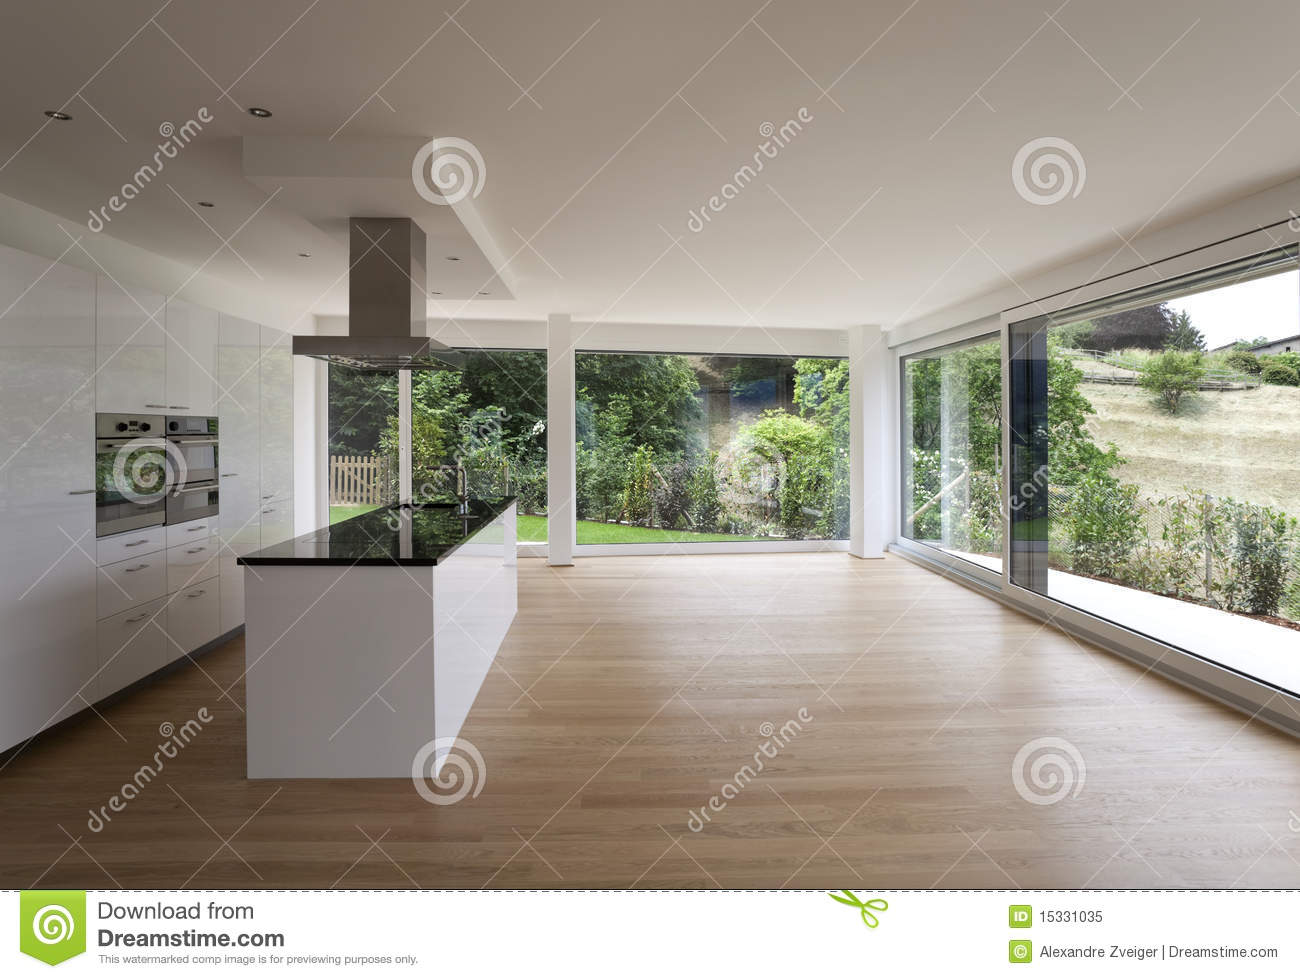 Bel int rieur d 39 une maison moderne image stock image for Interieur maison moderne photos